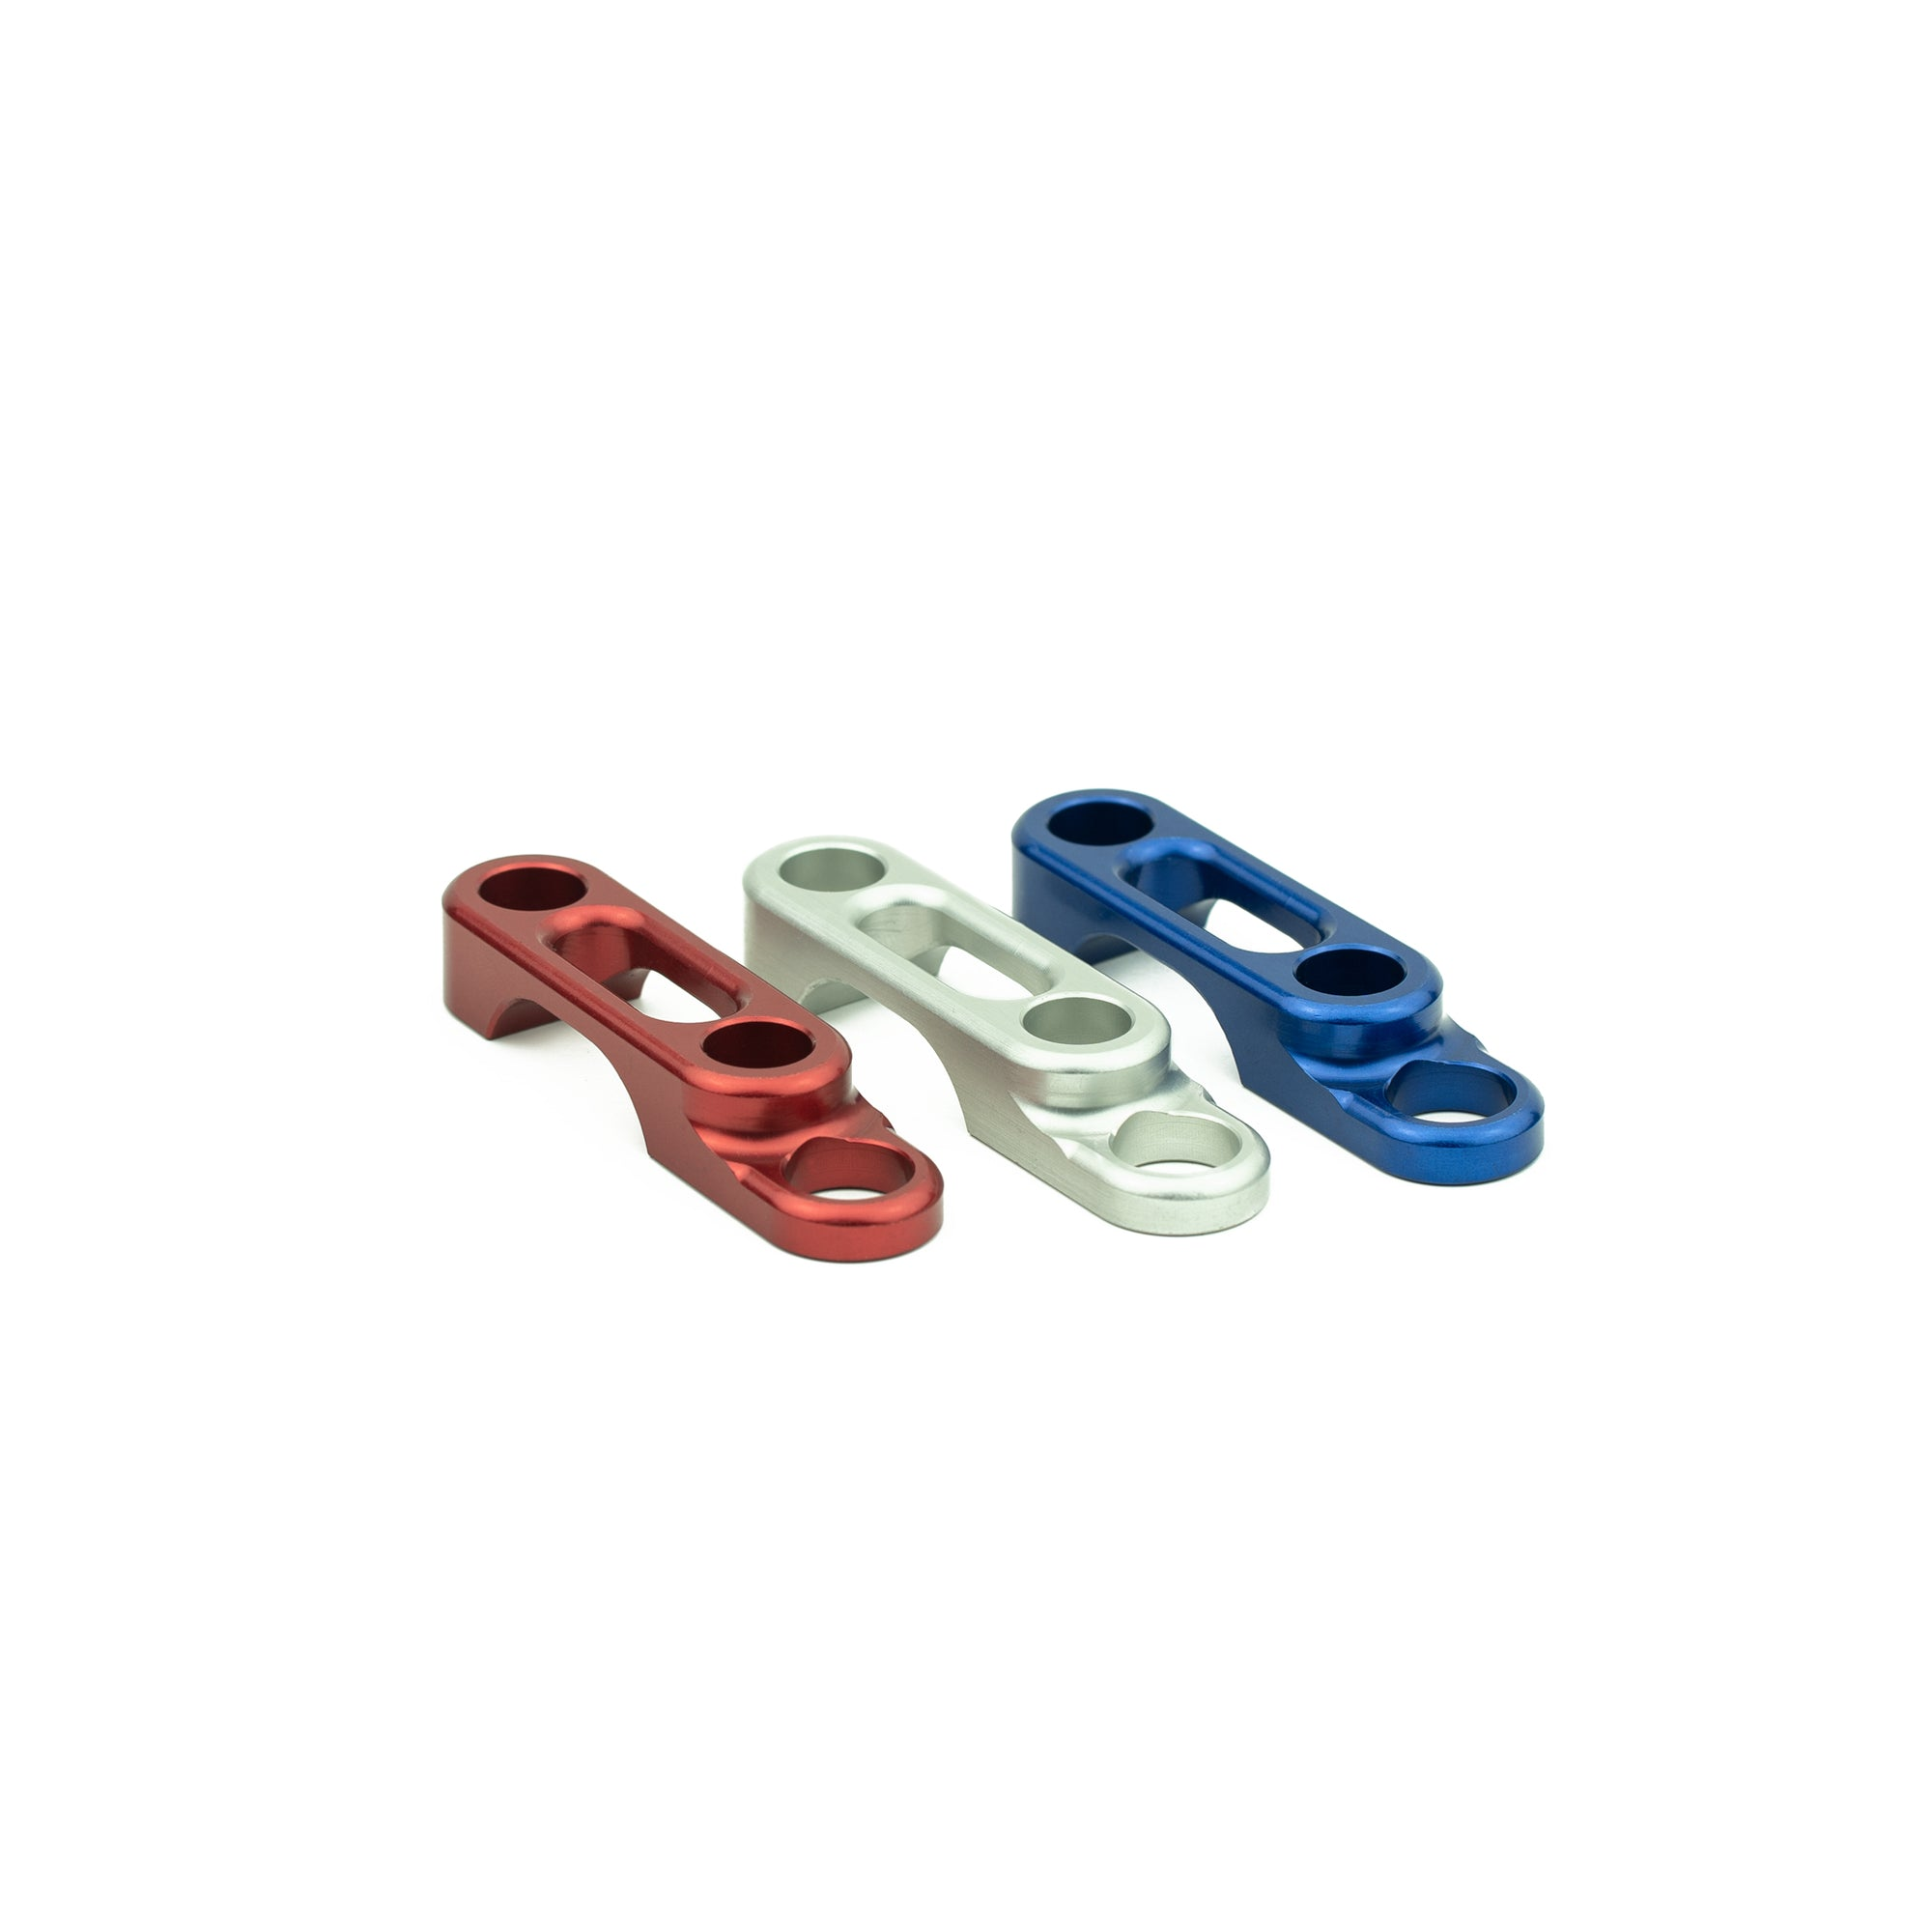 Hook keeper clamps used for rigging or attaching a leash to a fishing reel.